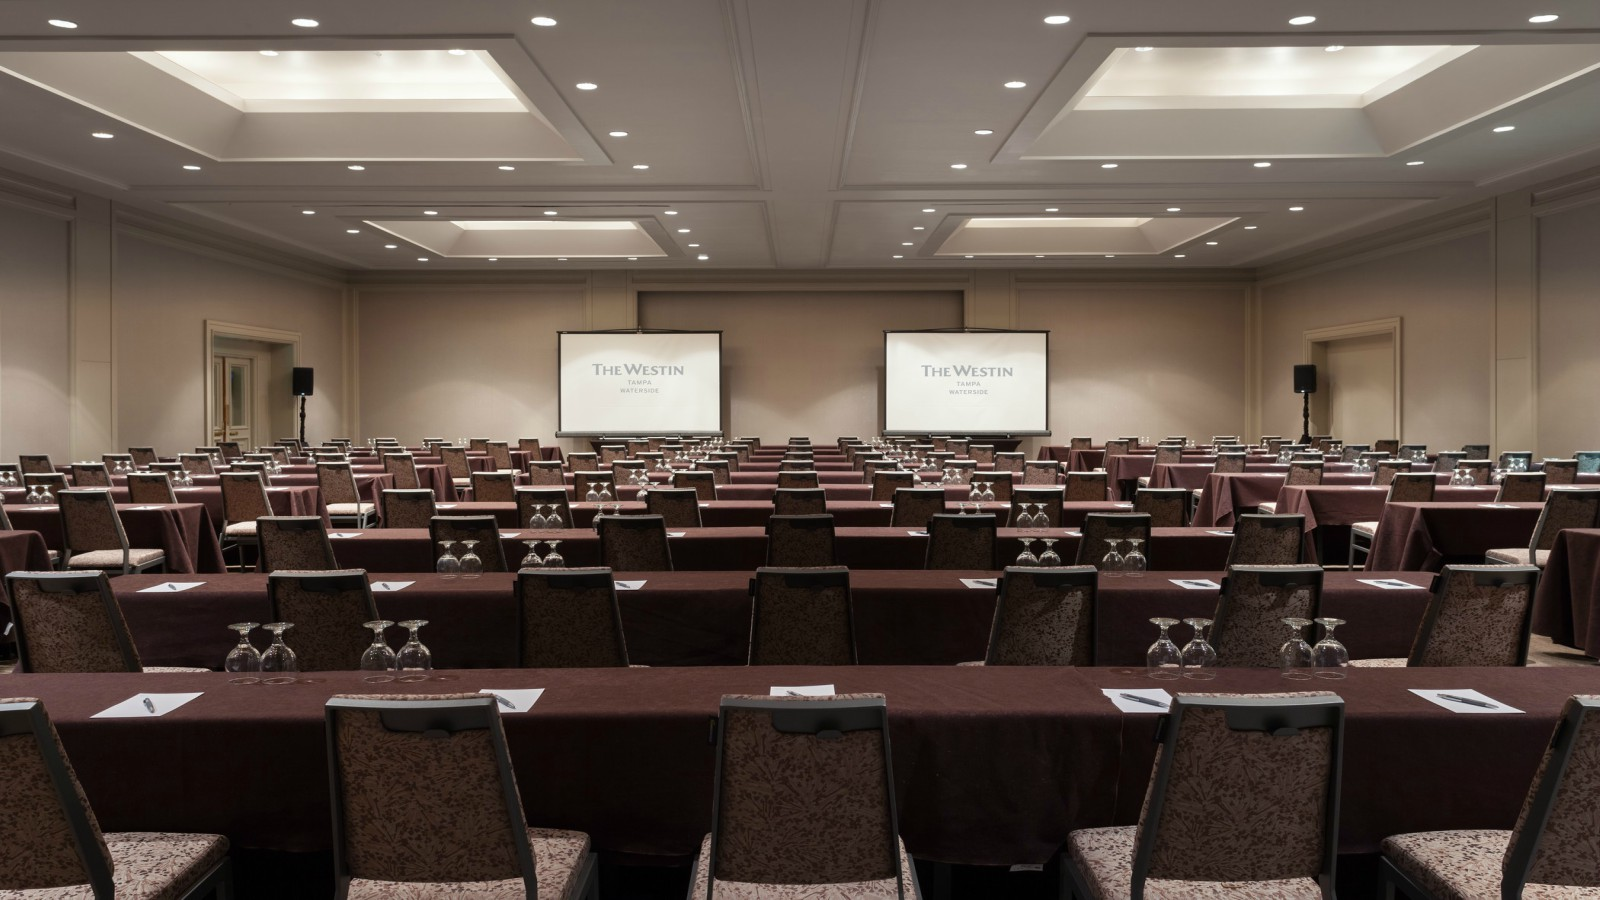 The Westin Tampa Waterside - Newly Refreshed Ballroom Classroom Setup